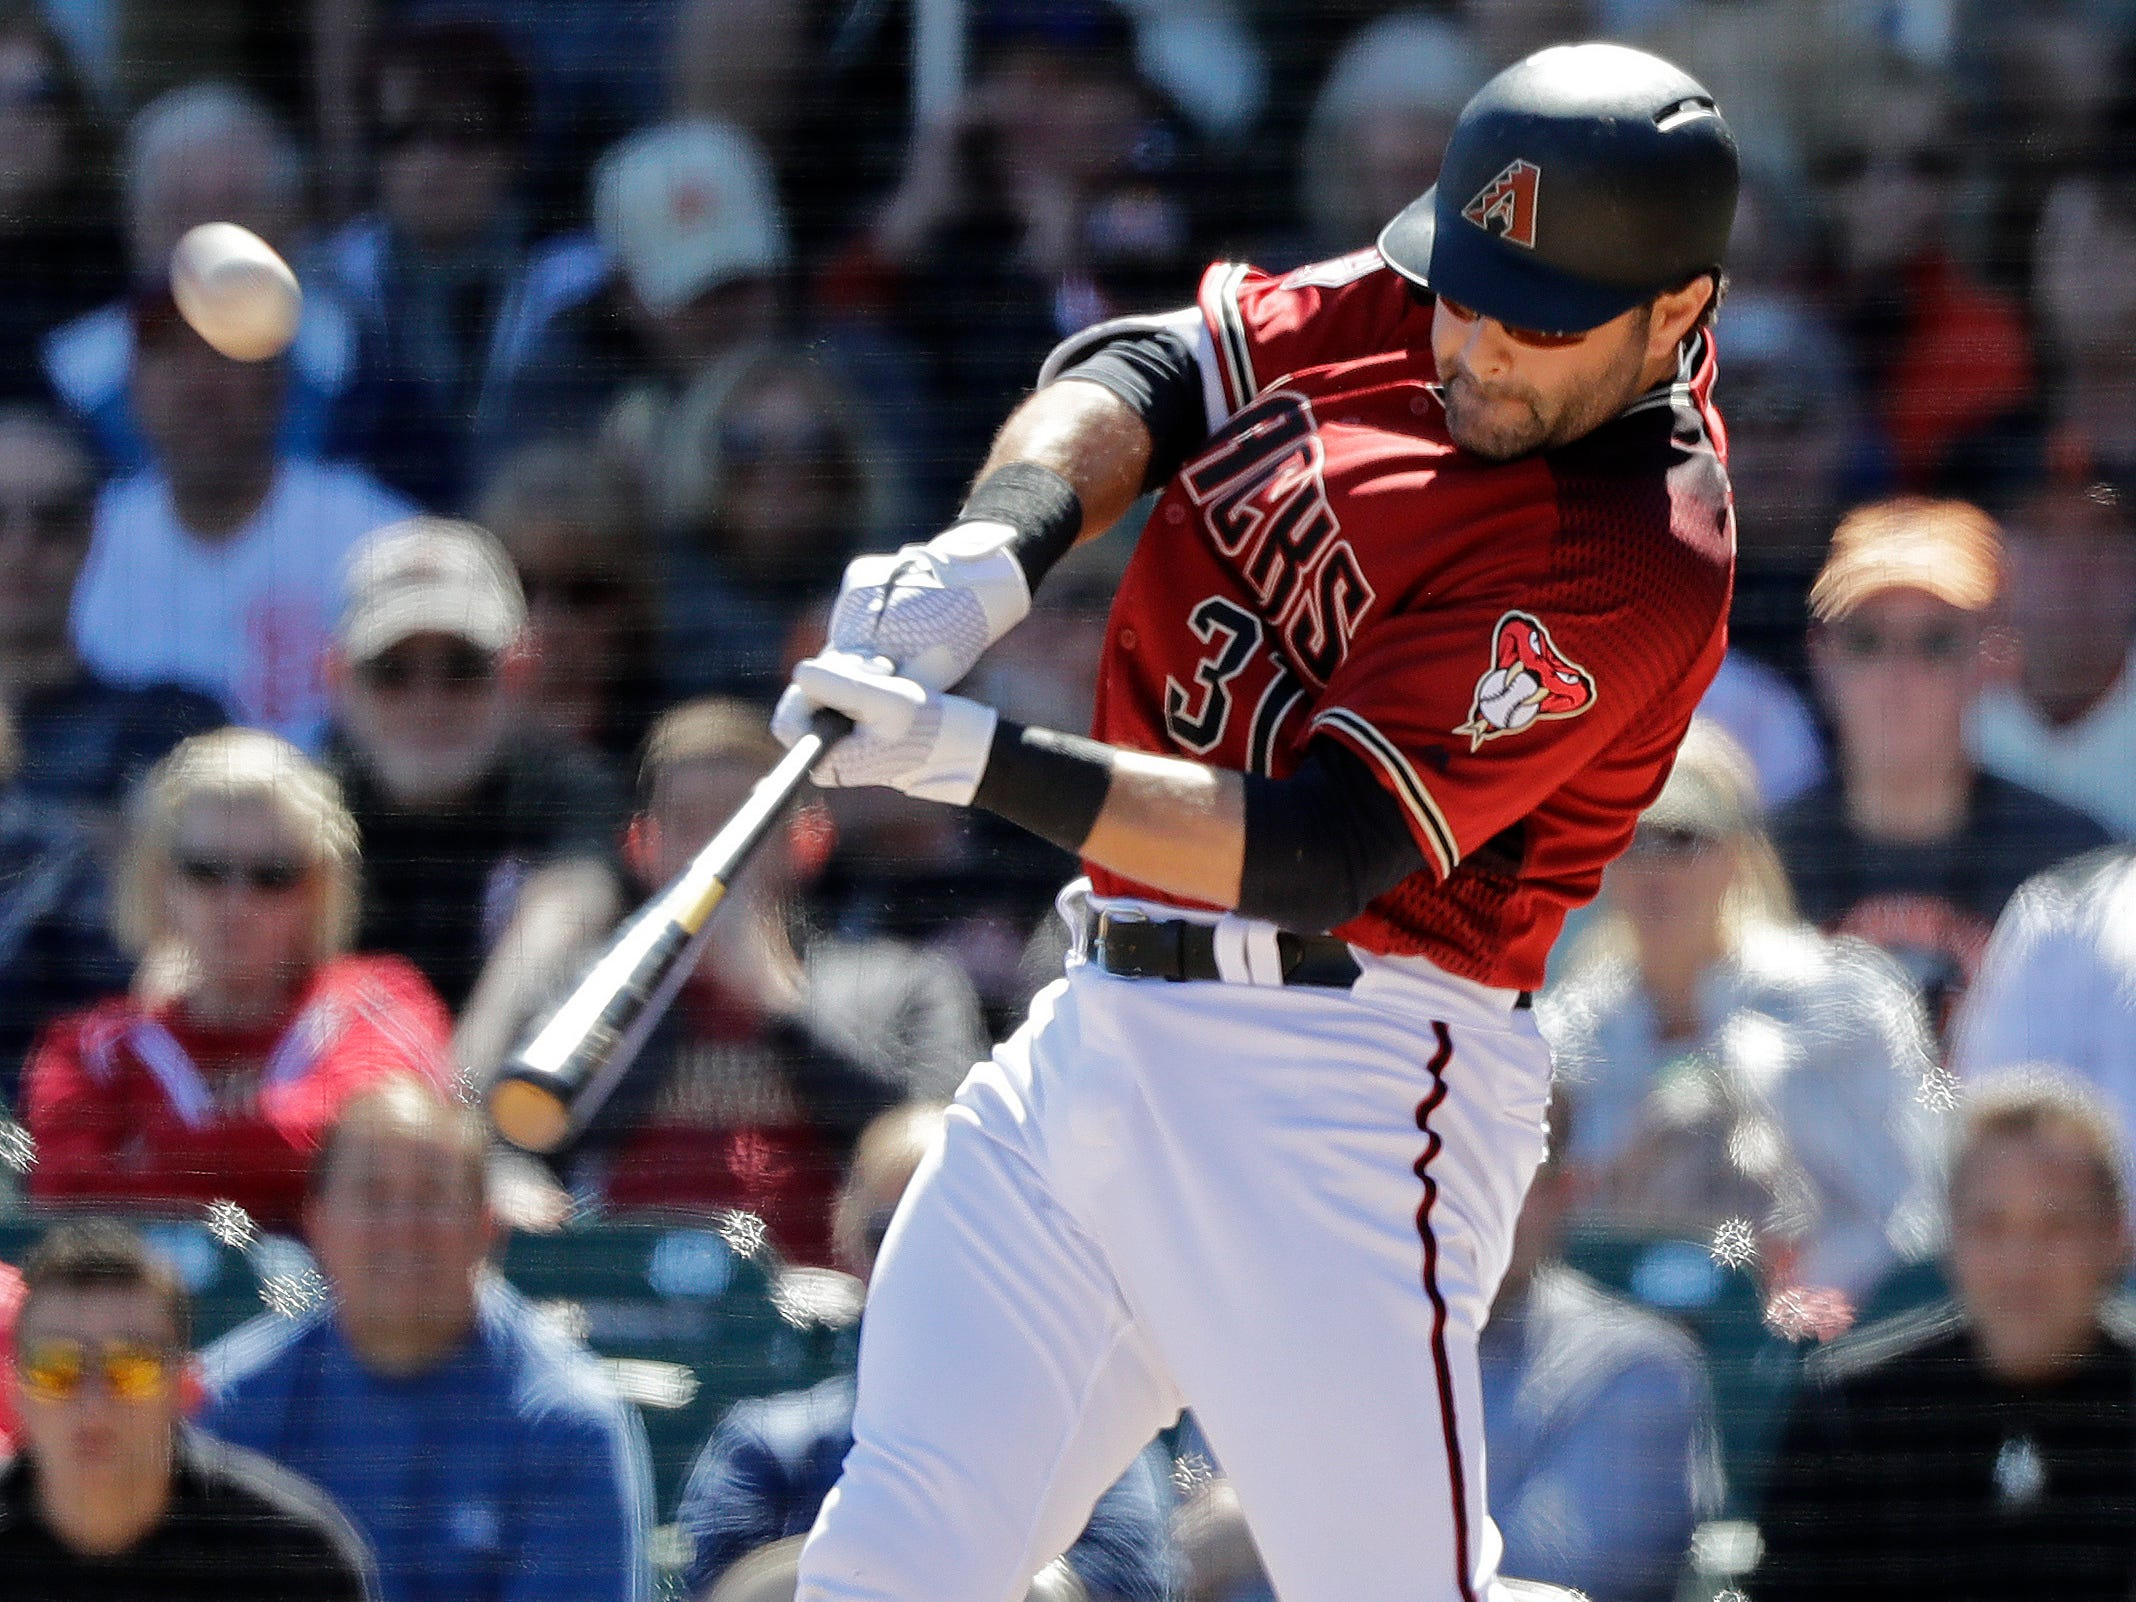 Arizona Diamondbacks' Alex Avila drives in a run with a sacrifice fly against the San Francisco Giants during the second inning of a spring training baseball game Thursday, March 14, 2019, in Scottsdale, Ariz.